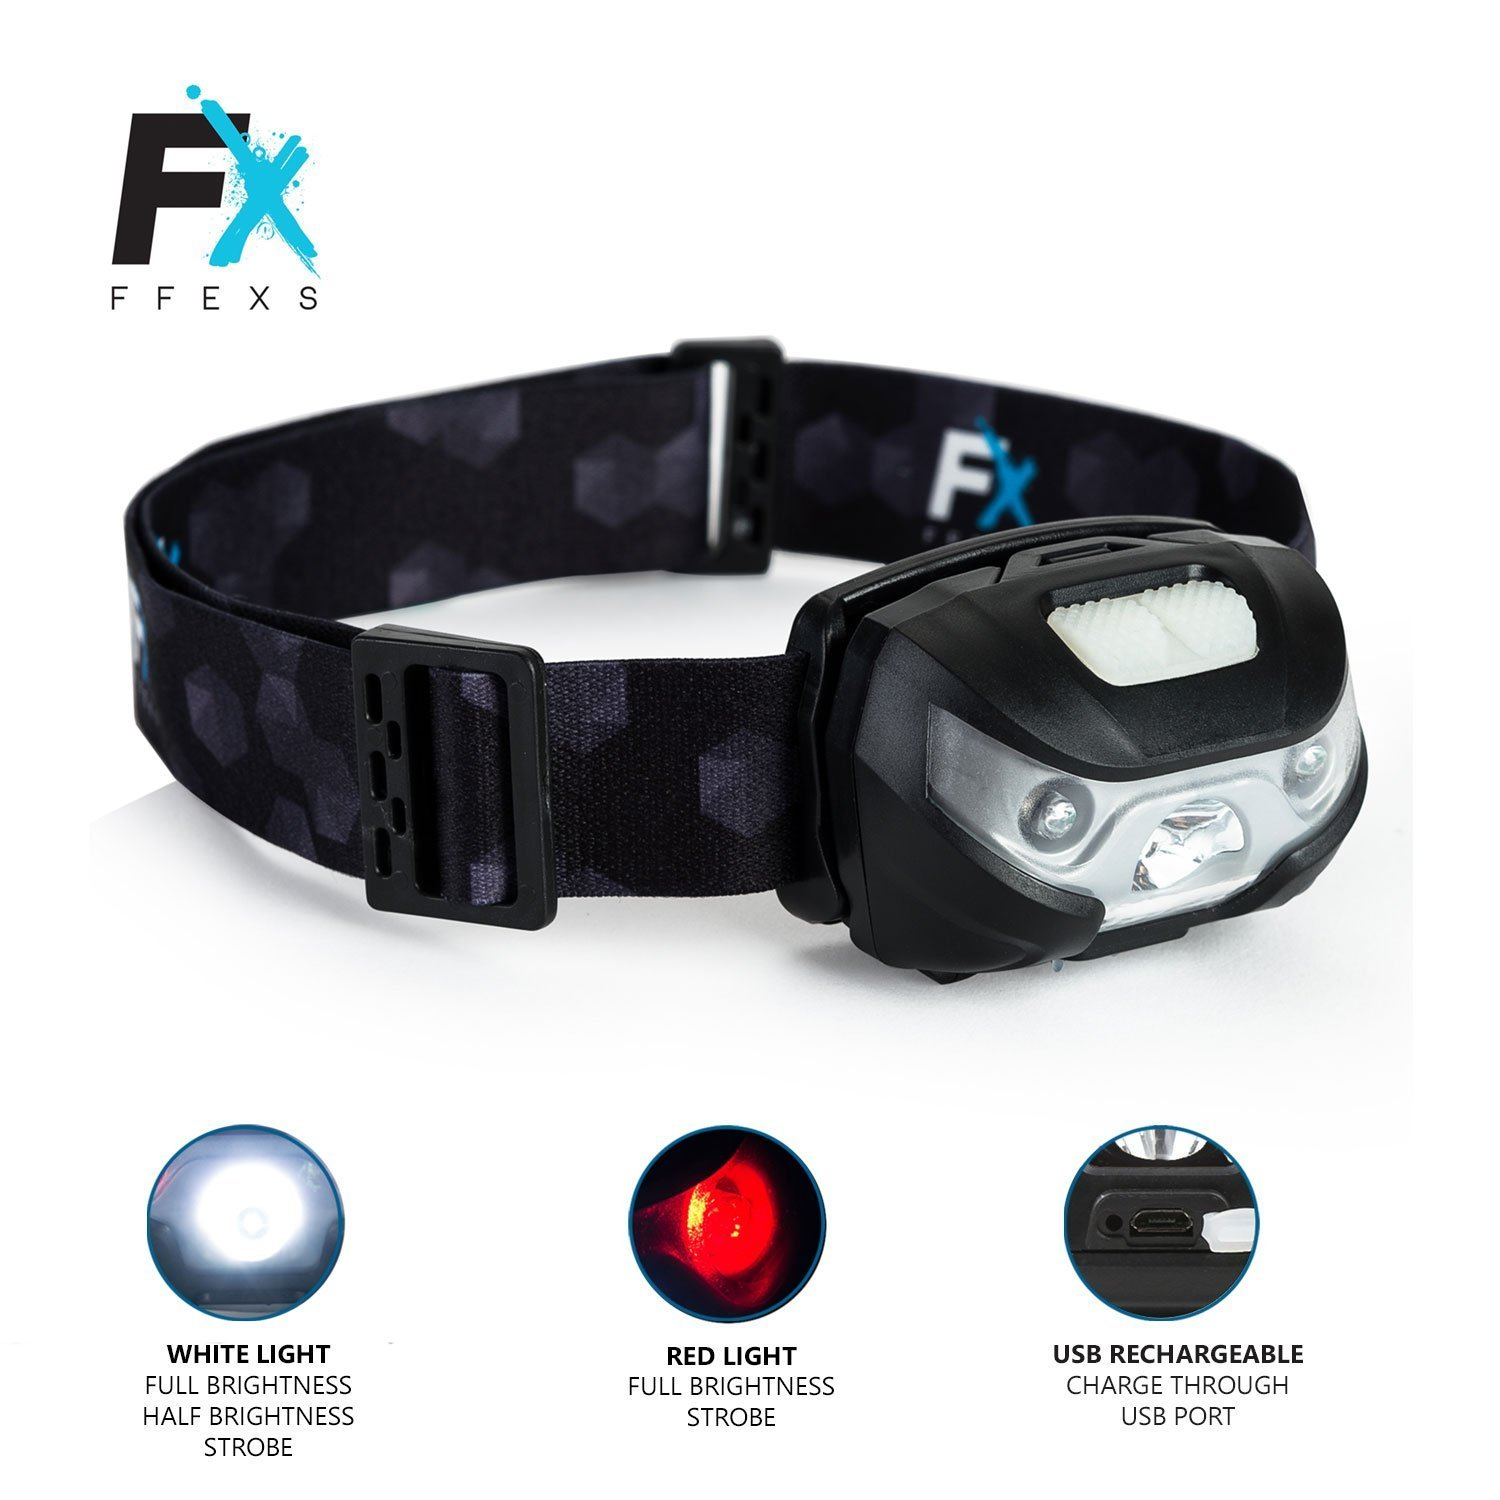 Headlamp LED Headlight Super Bright Premium USB Rechargeable Head Torch Waterproof Design - White & Red Light 5 Modes Comfortable Best Equipment Lamp Bulb Night Running Camping - Solar Flashlight Kids by FX FFEXS (Image #3)